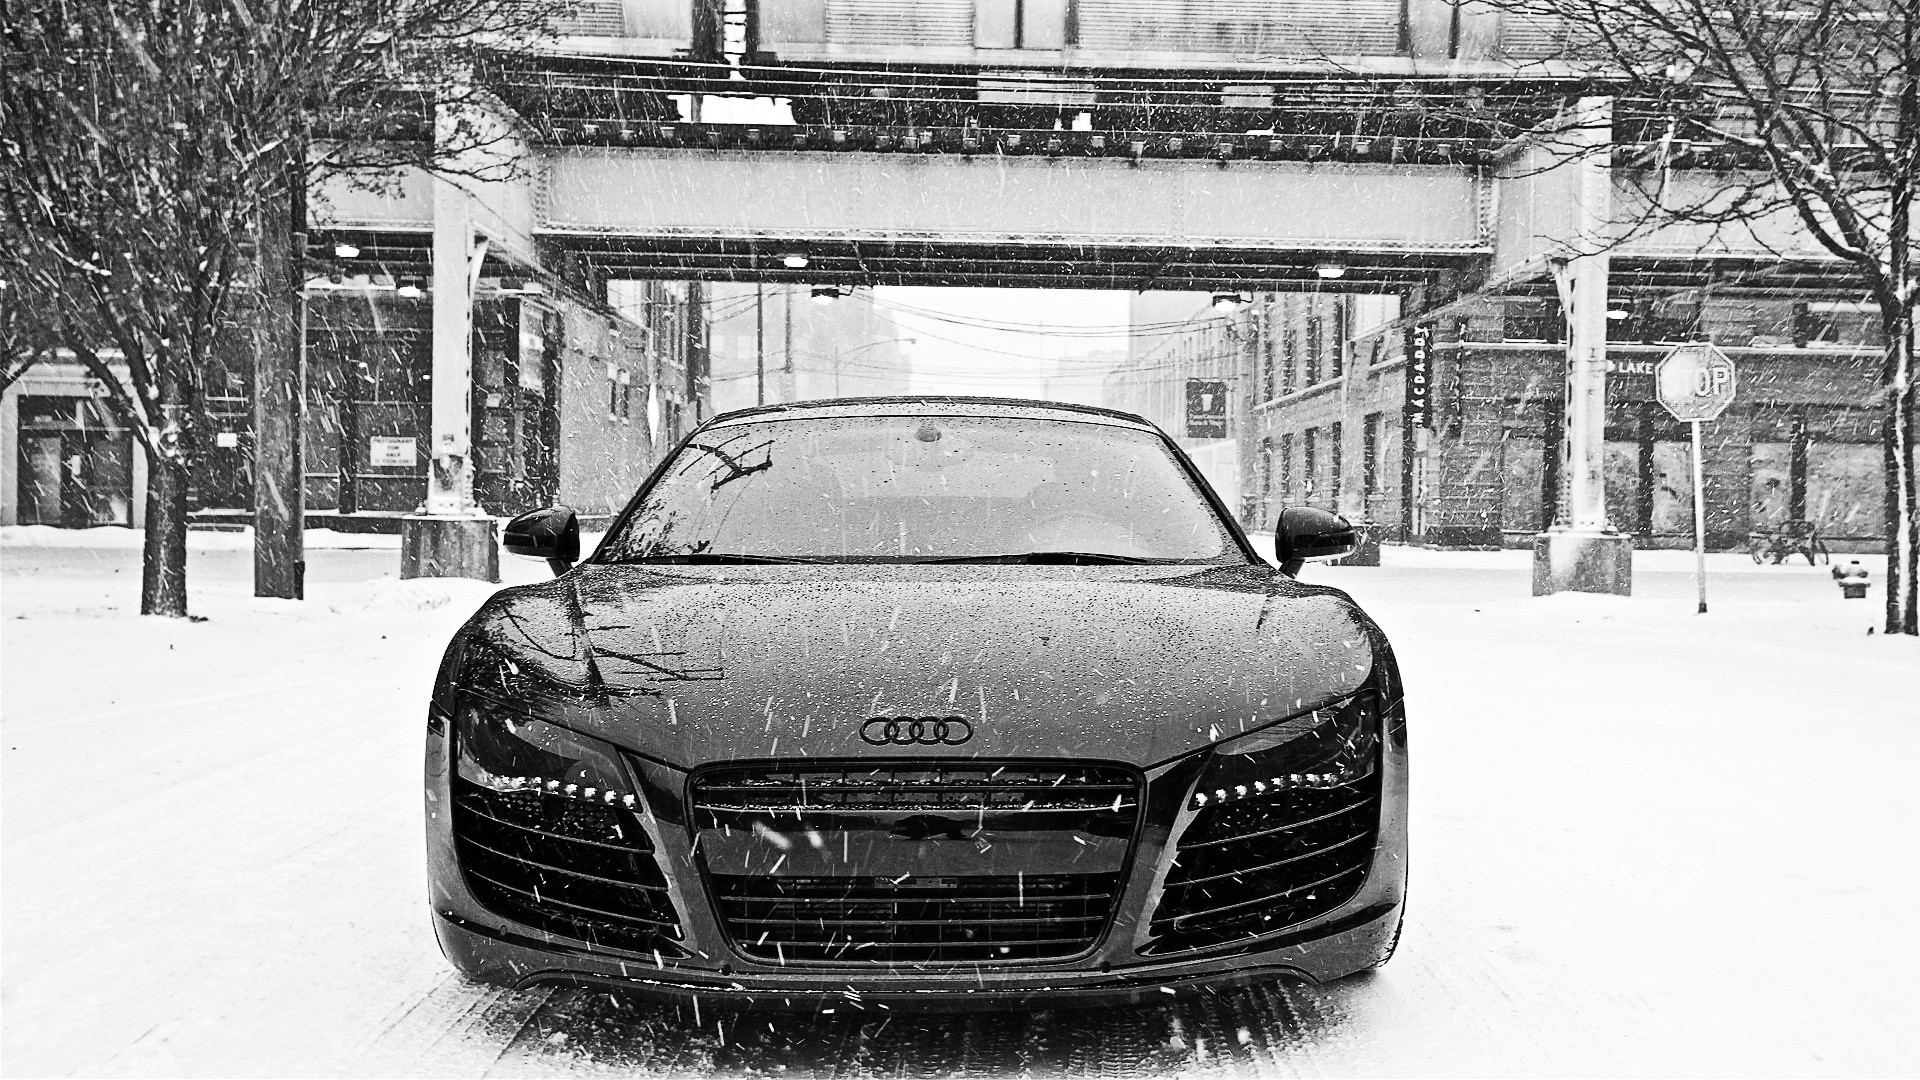 Black and White Audi in Snow HD Wallpaper in Full HD from the Cars  category. Tags: Audi Black and White, front view, snow, Winter